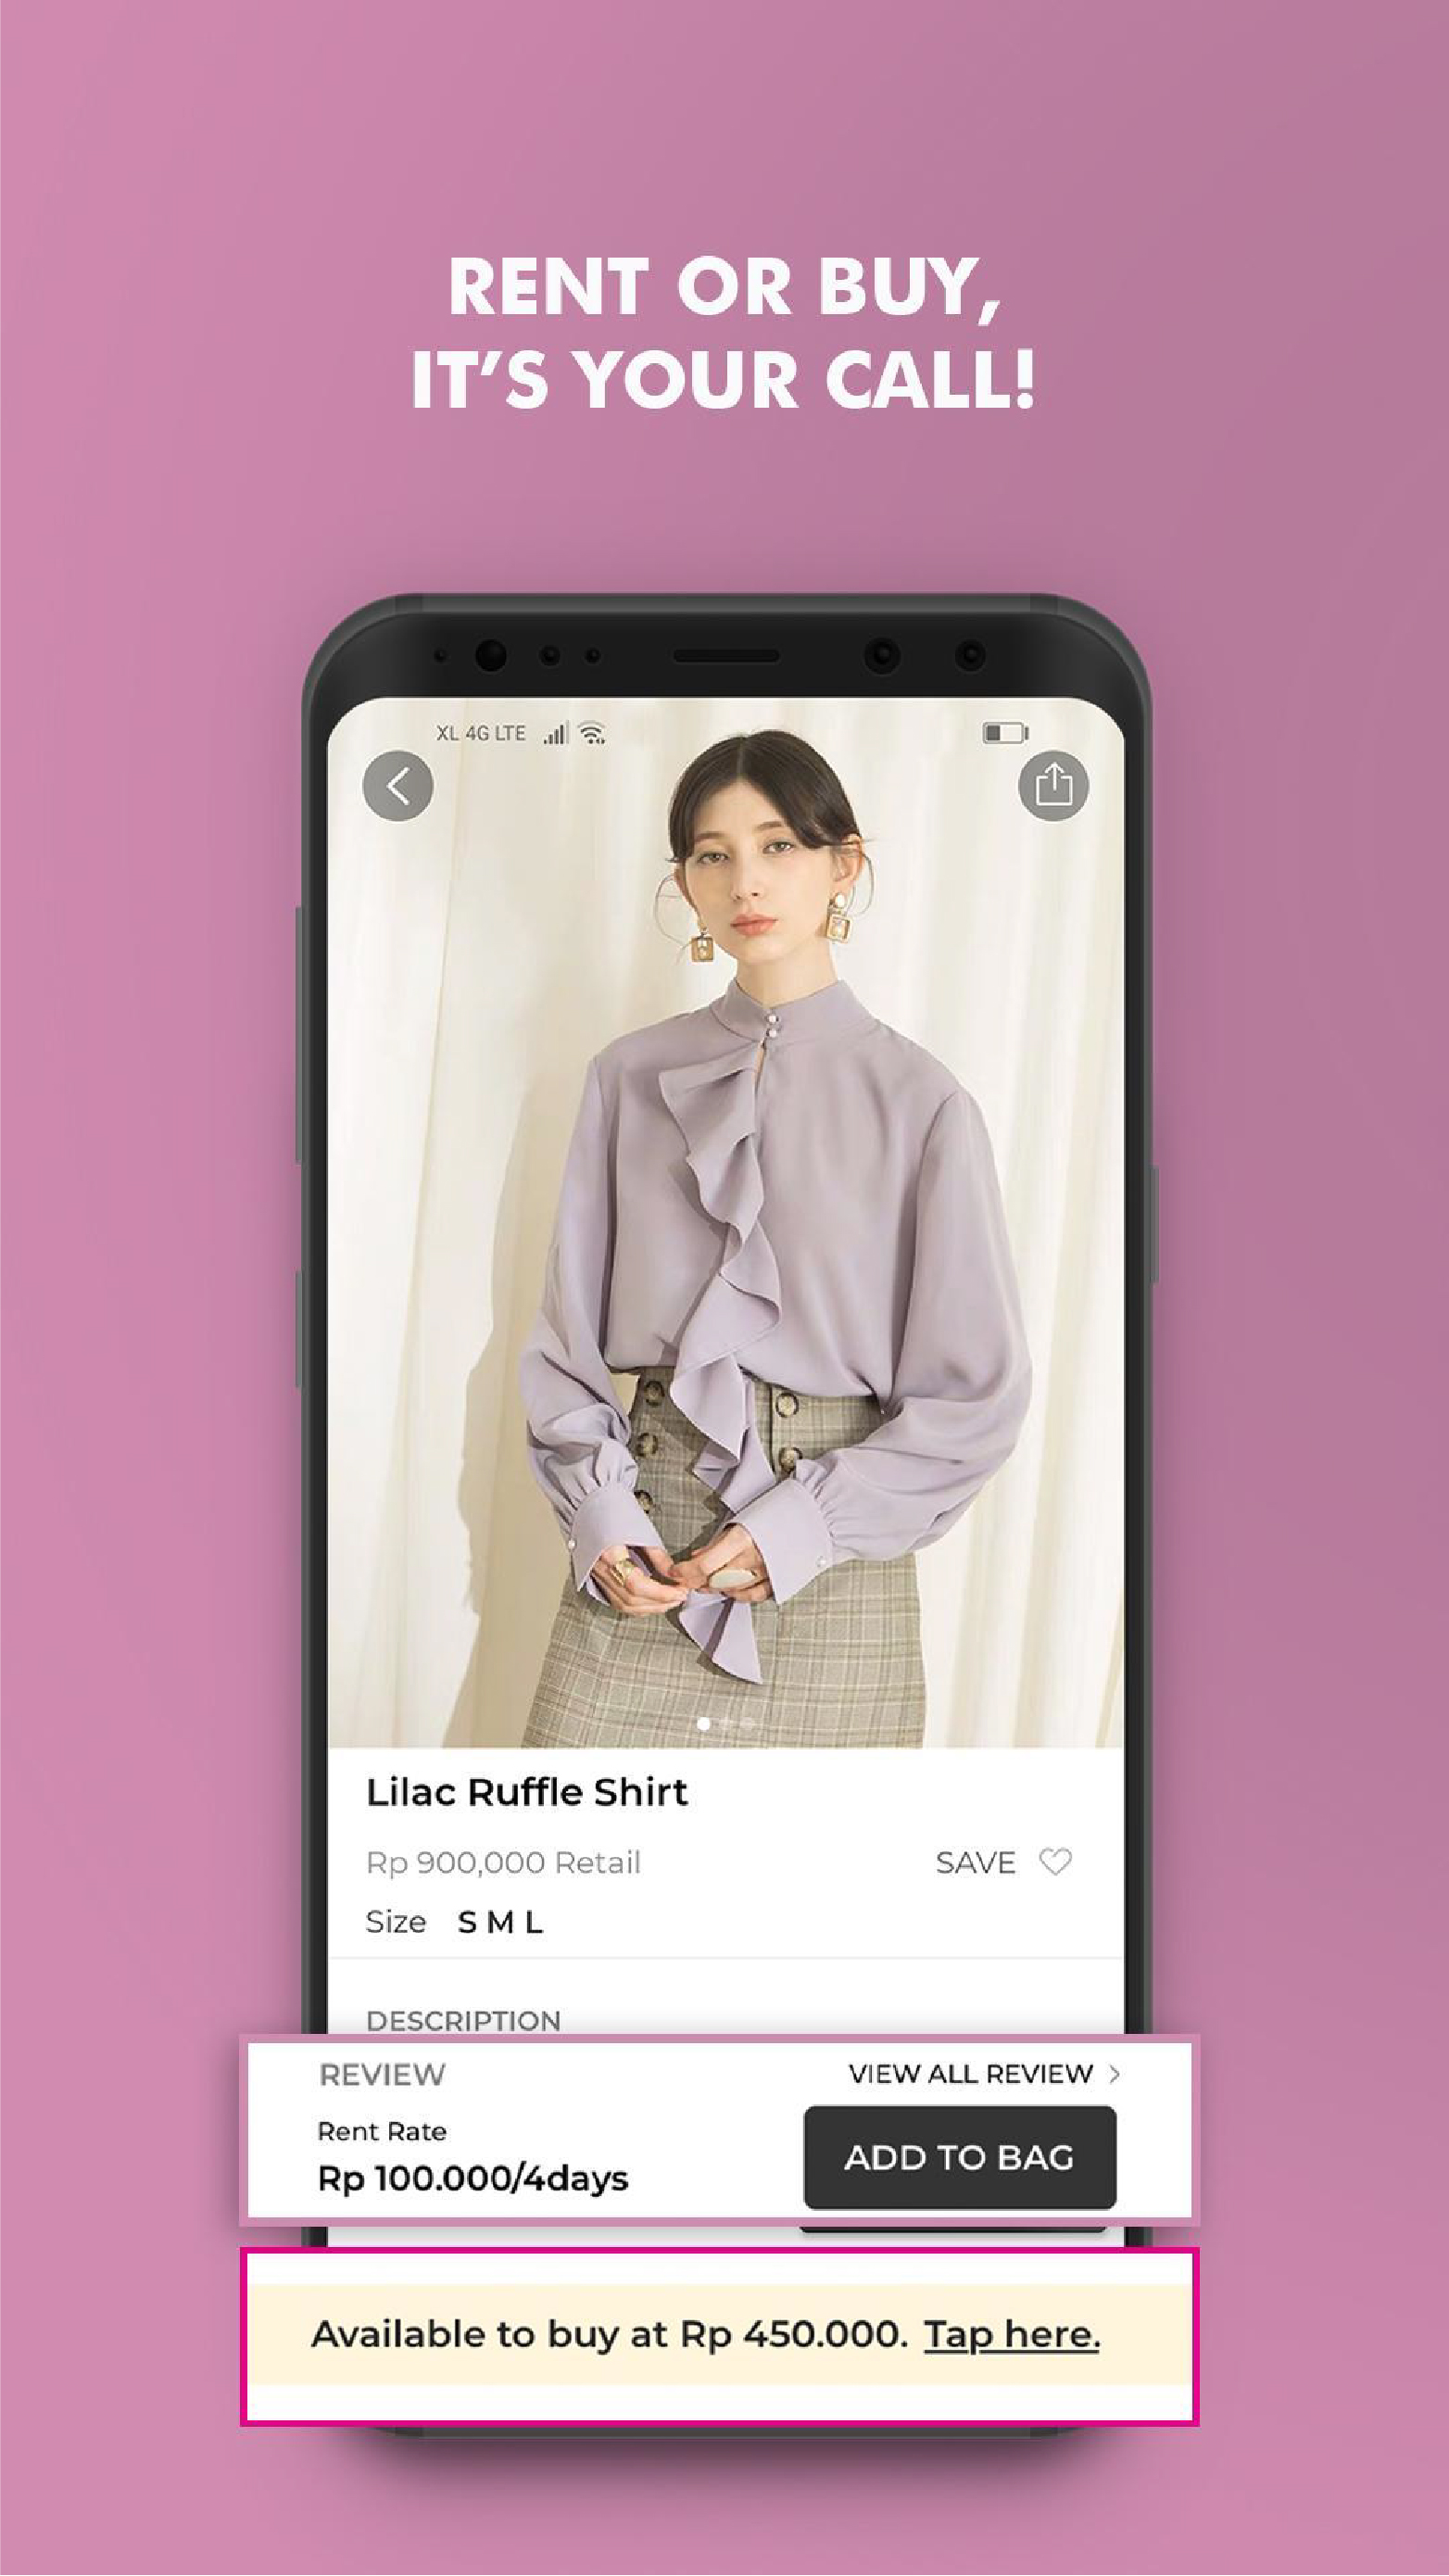 Rentique's New App Brings Retail Freedom, Lets Users Buy or Rent Exquisite Garments at a Fraction of Cost